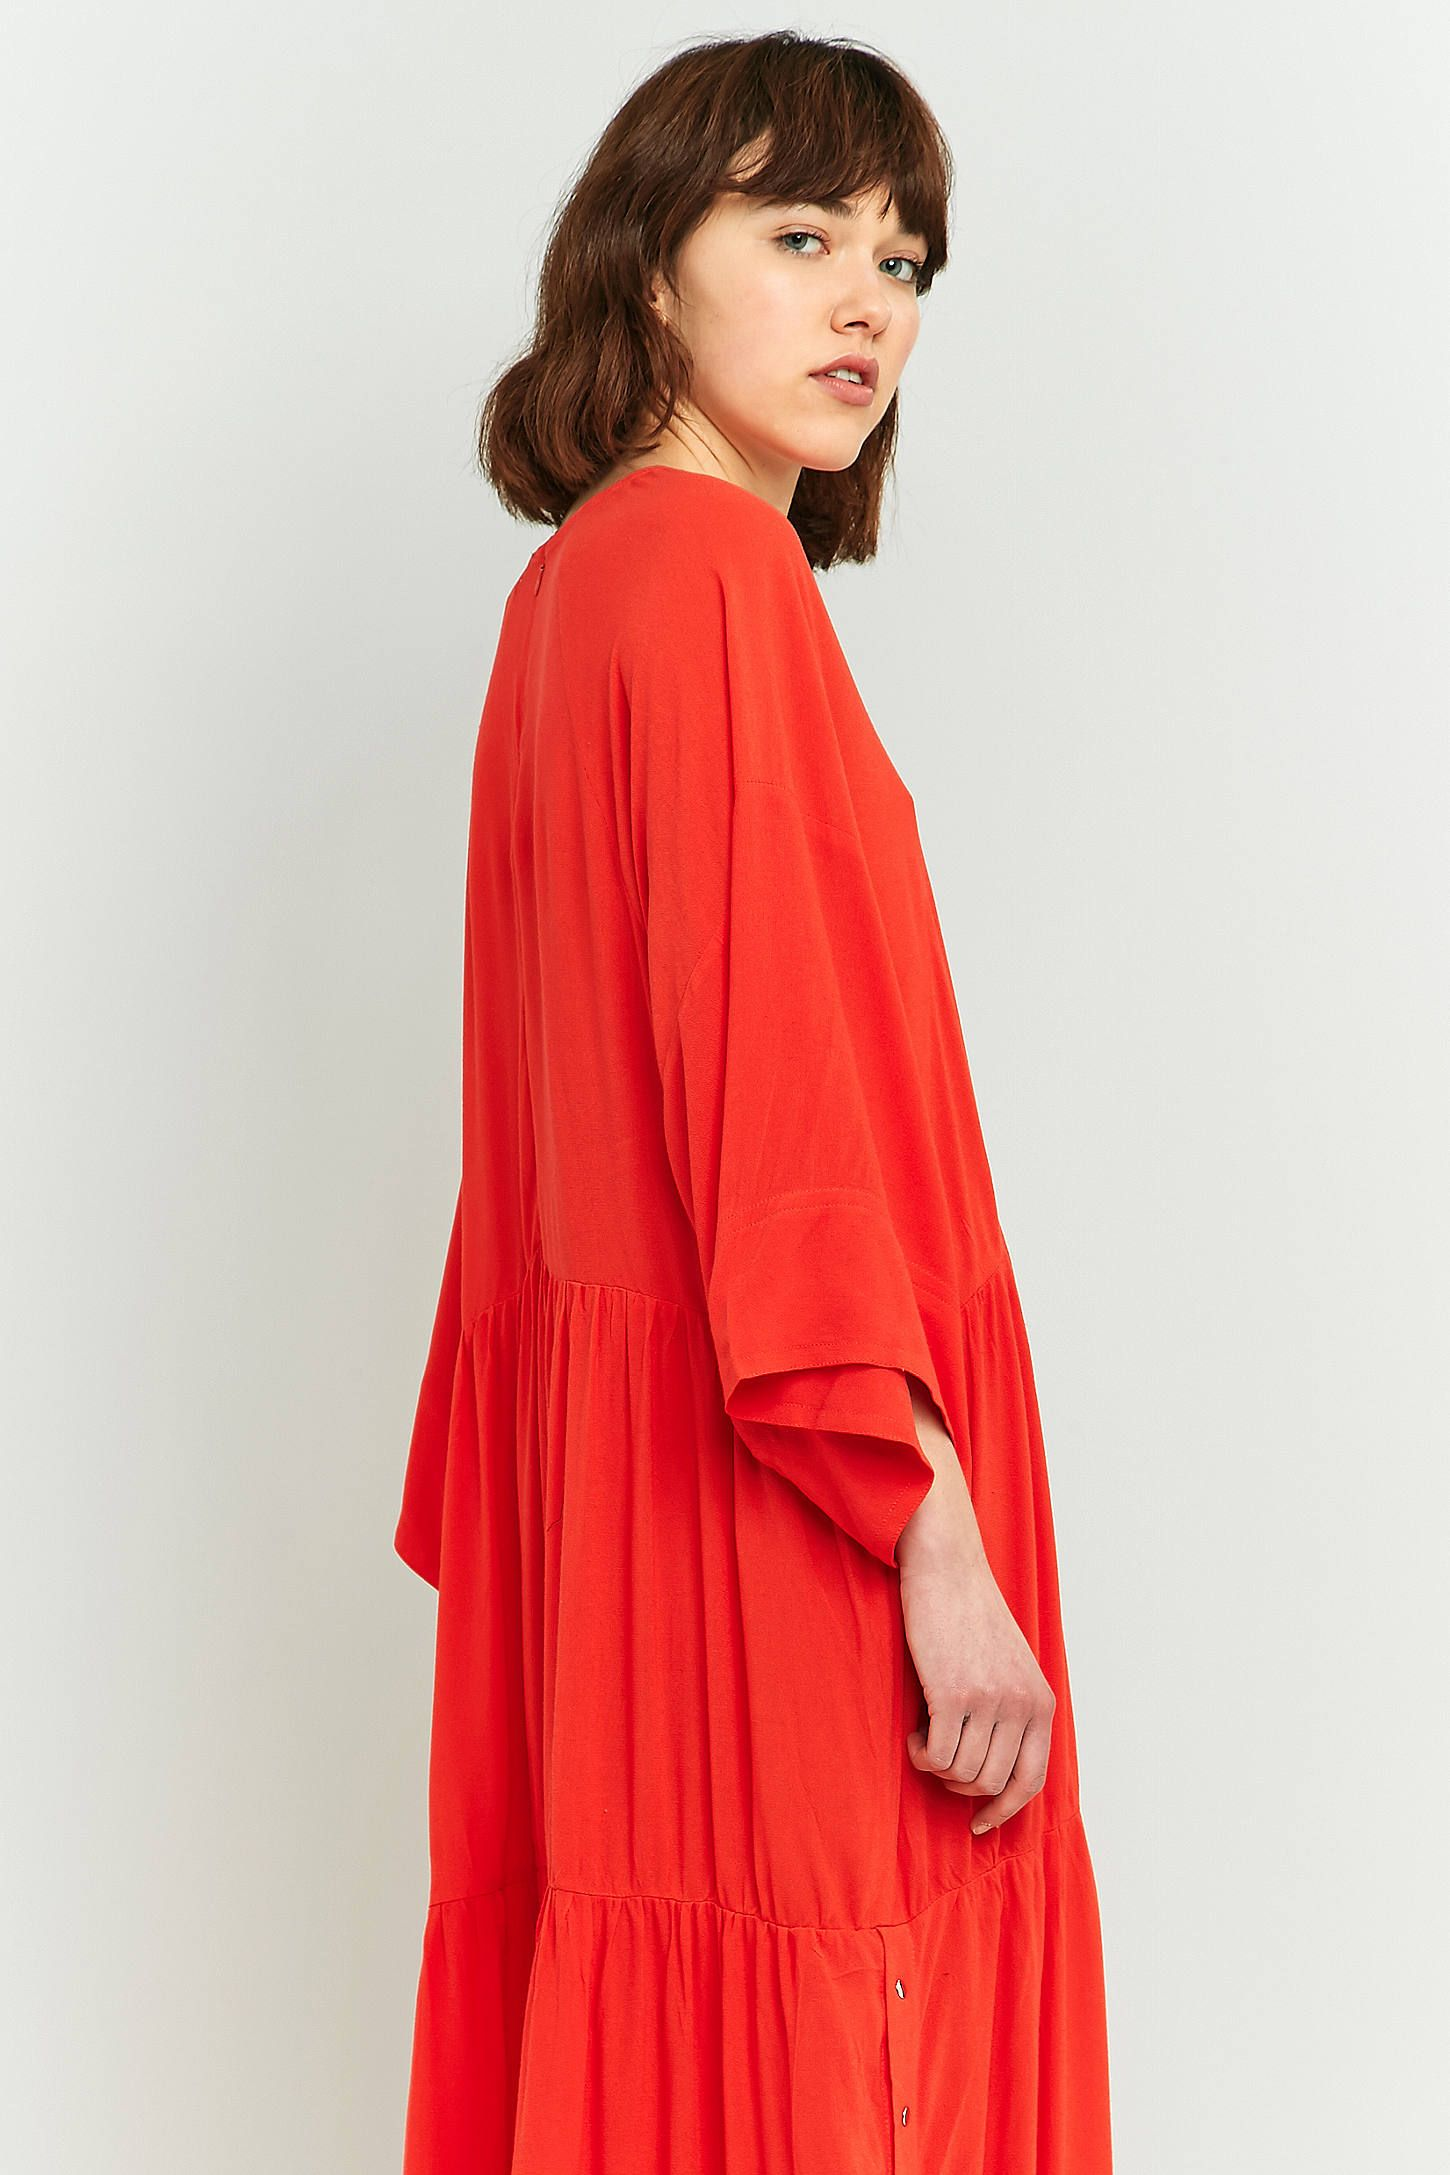 Slide View: 6: LF Markey Ricky Red Dress